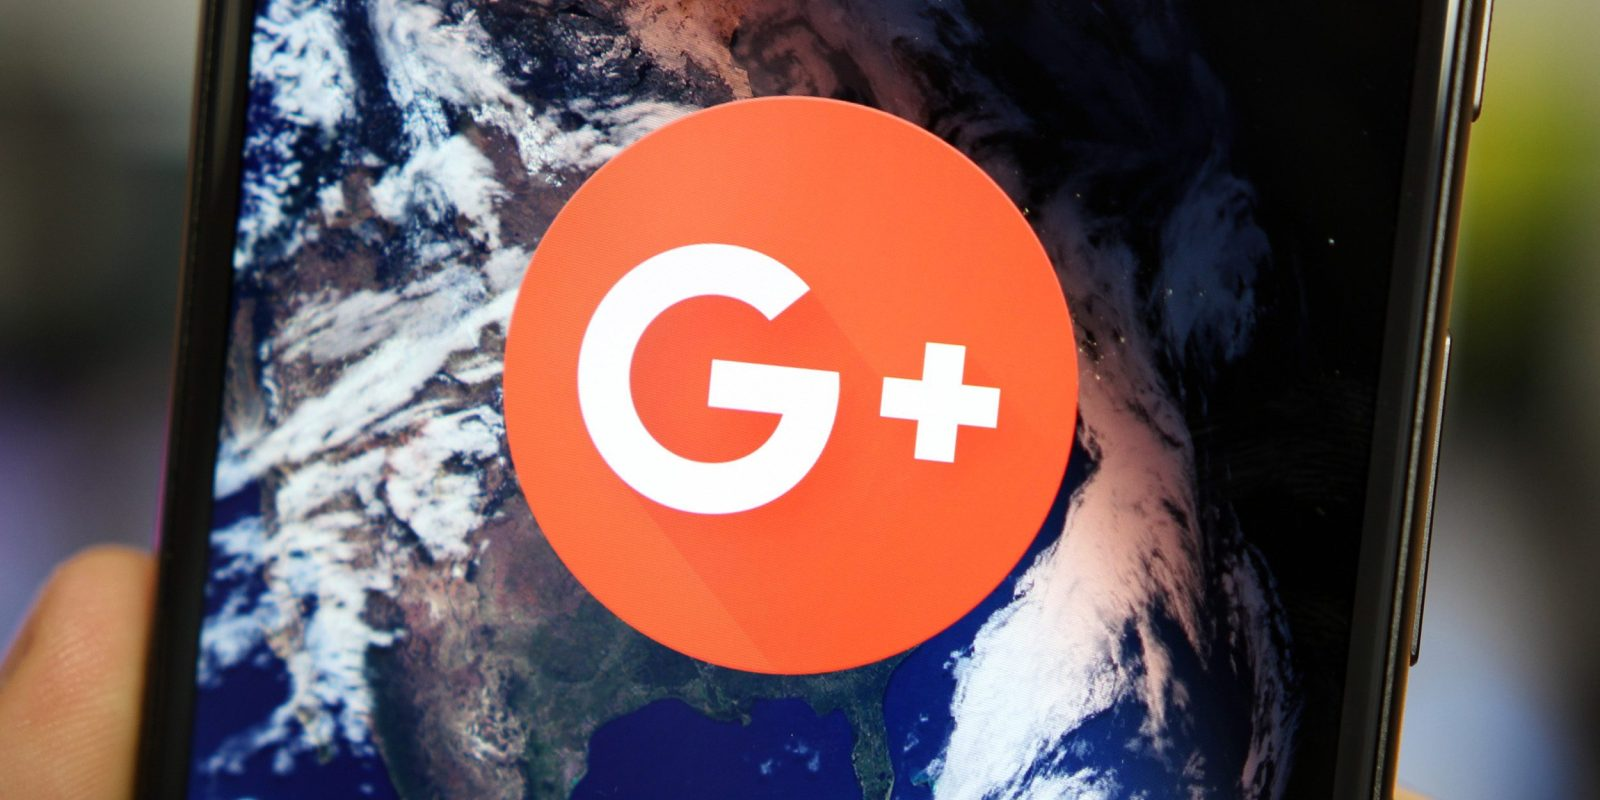 How to download Google+ data before it shuts down - 9to5Google